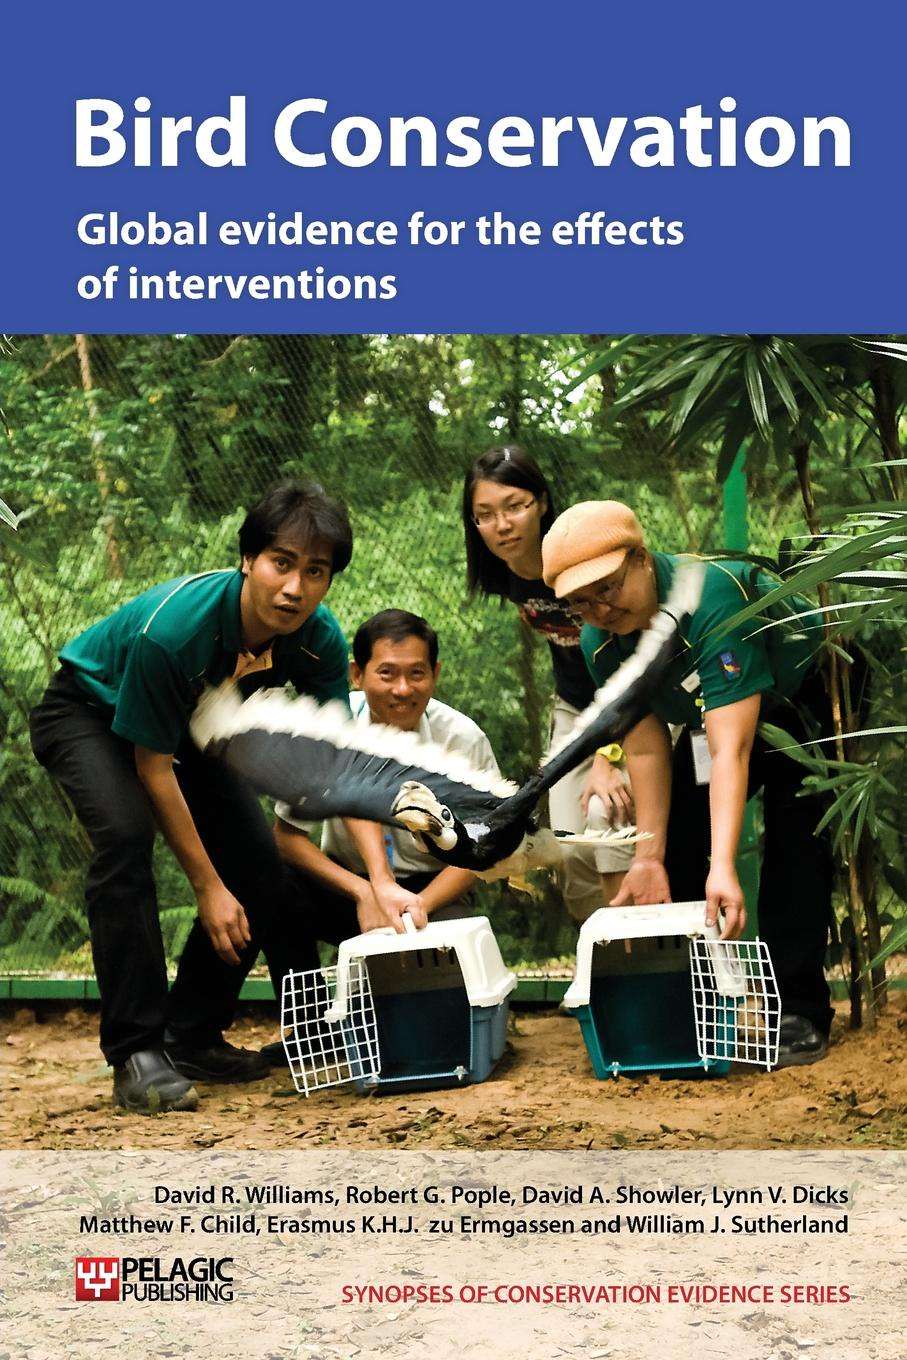 David R. Williams, Robert G. Pople, David A. Showler Bird Conservation. Global Evidence for the Effects of Interventions dilys roe biodiversity conservation and poverty alleviation exploring the evidence for a link